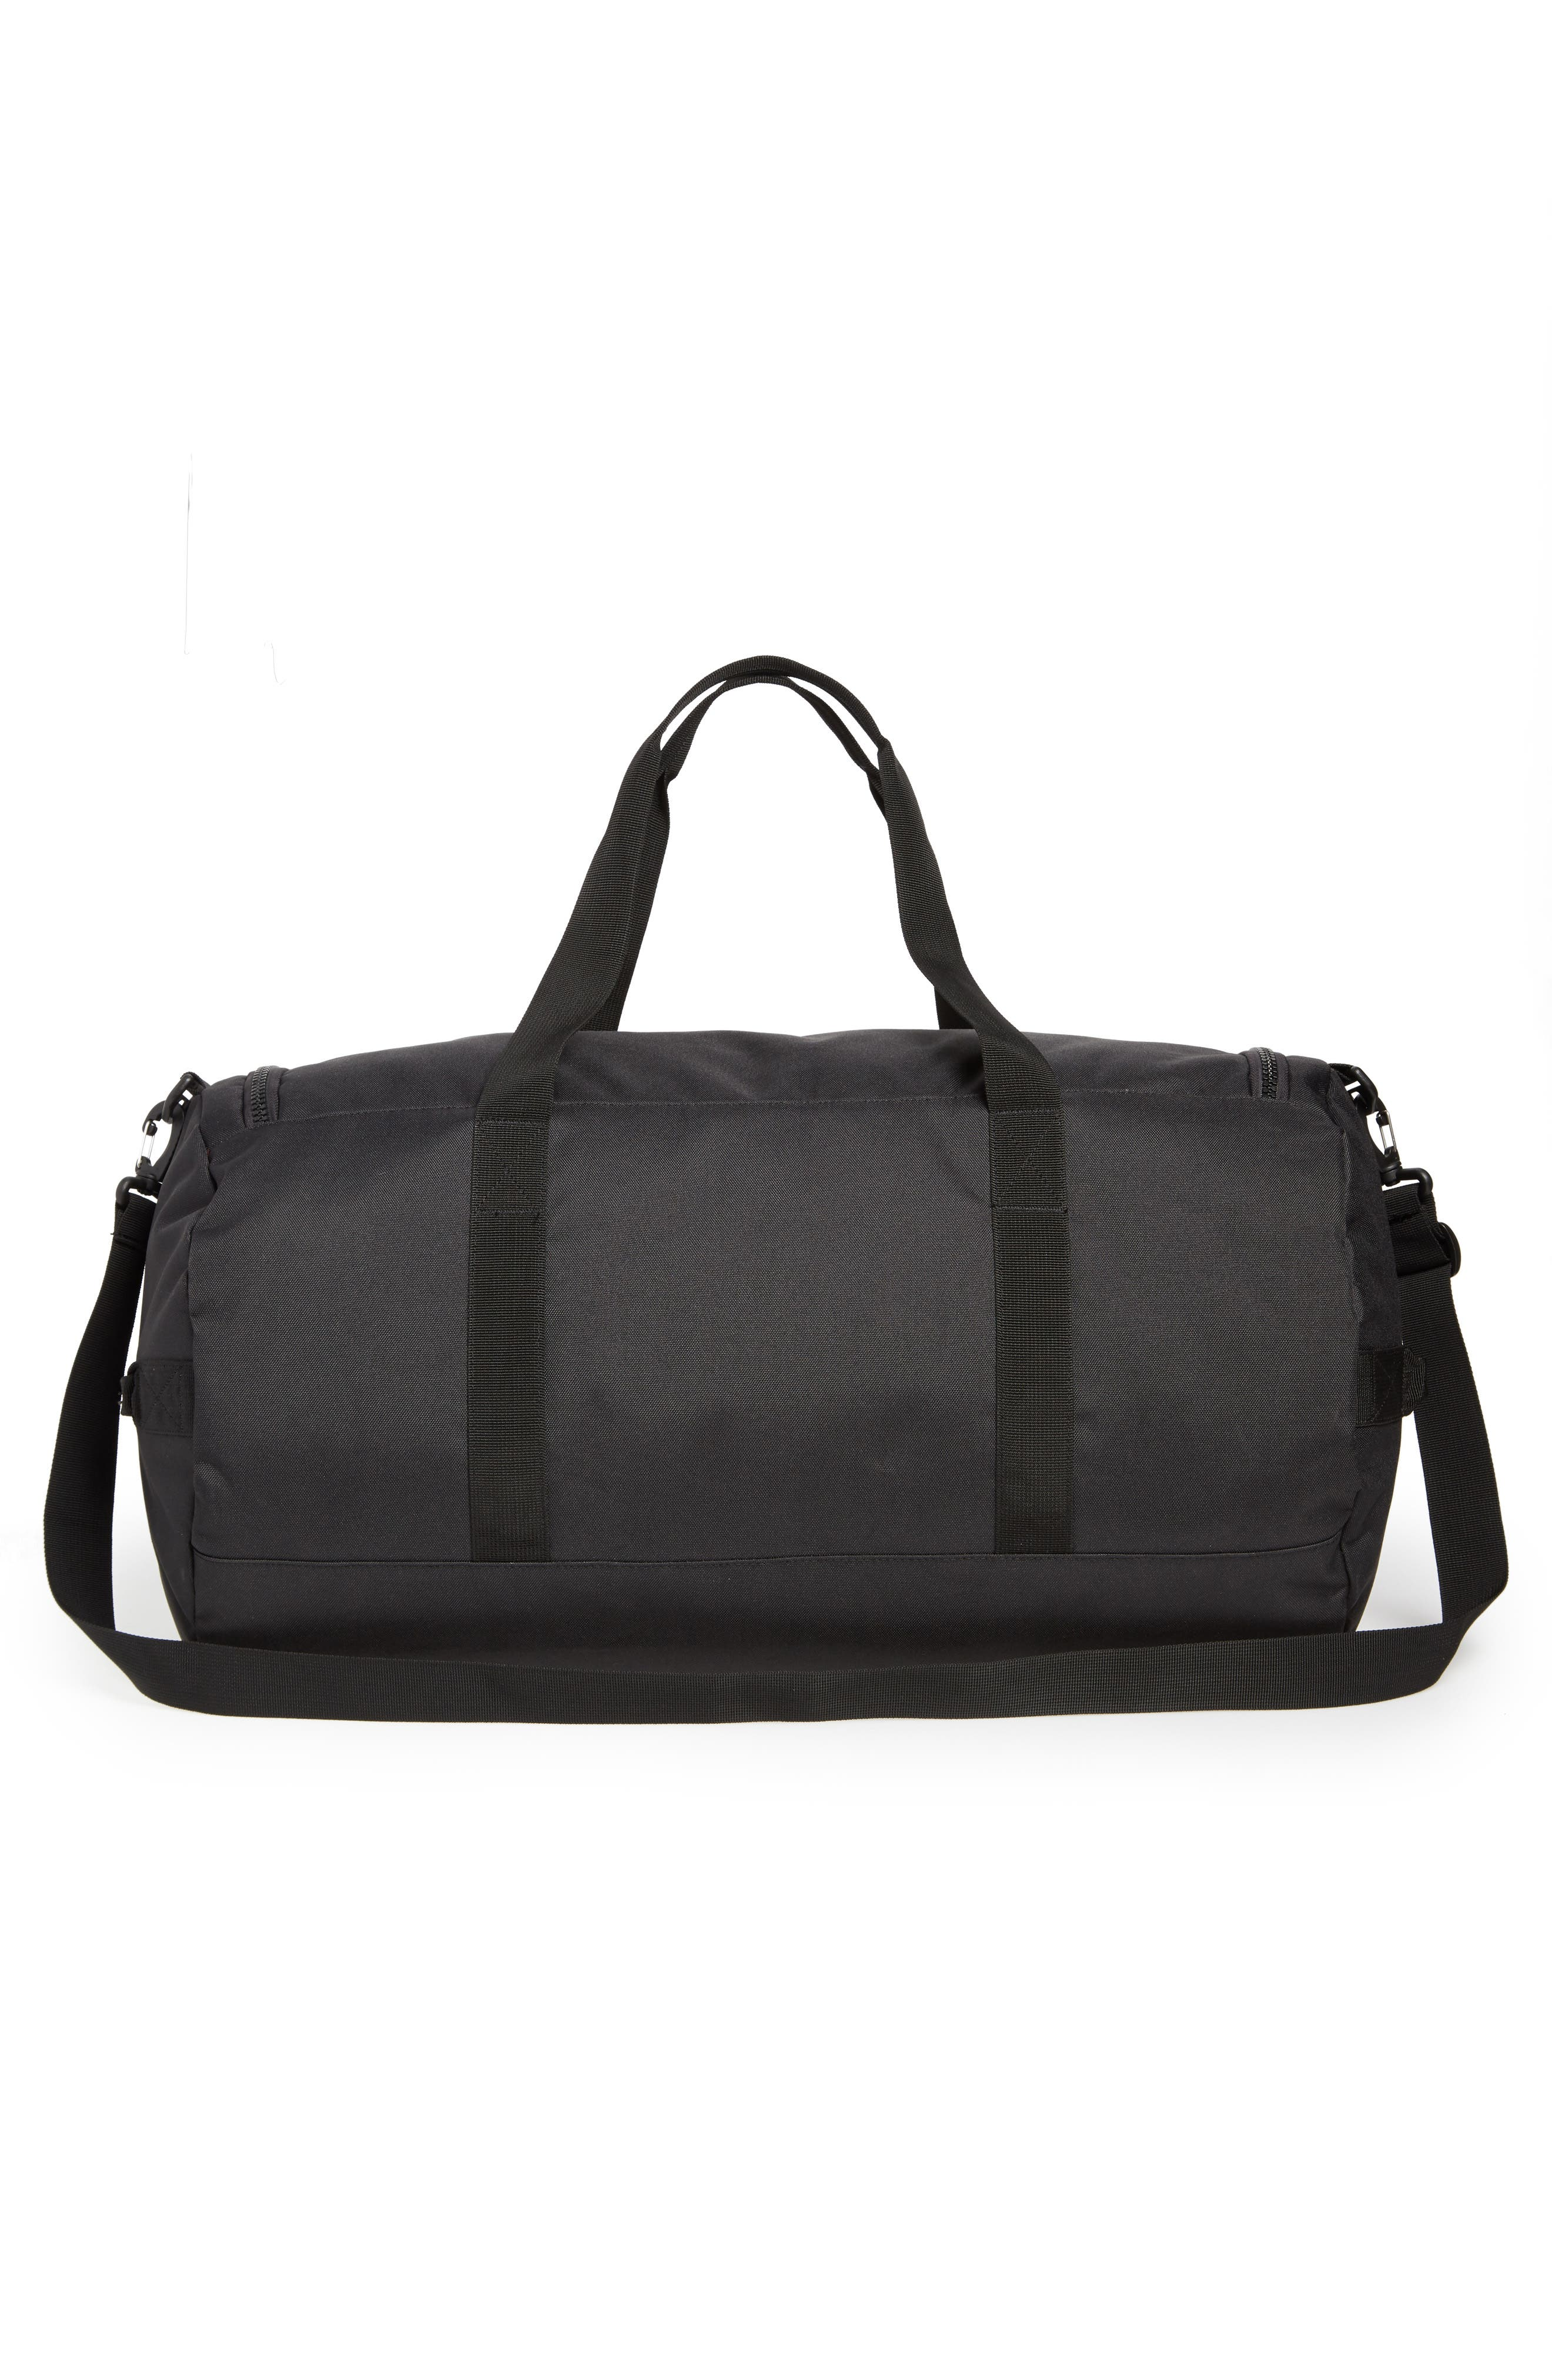 Sutton Duffel Bag,                             Alternate thumbnail 3, color,                             BLACK